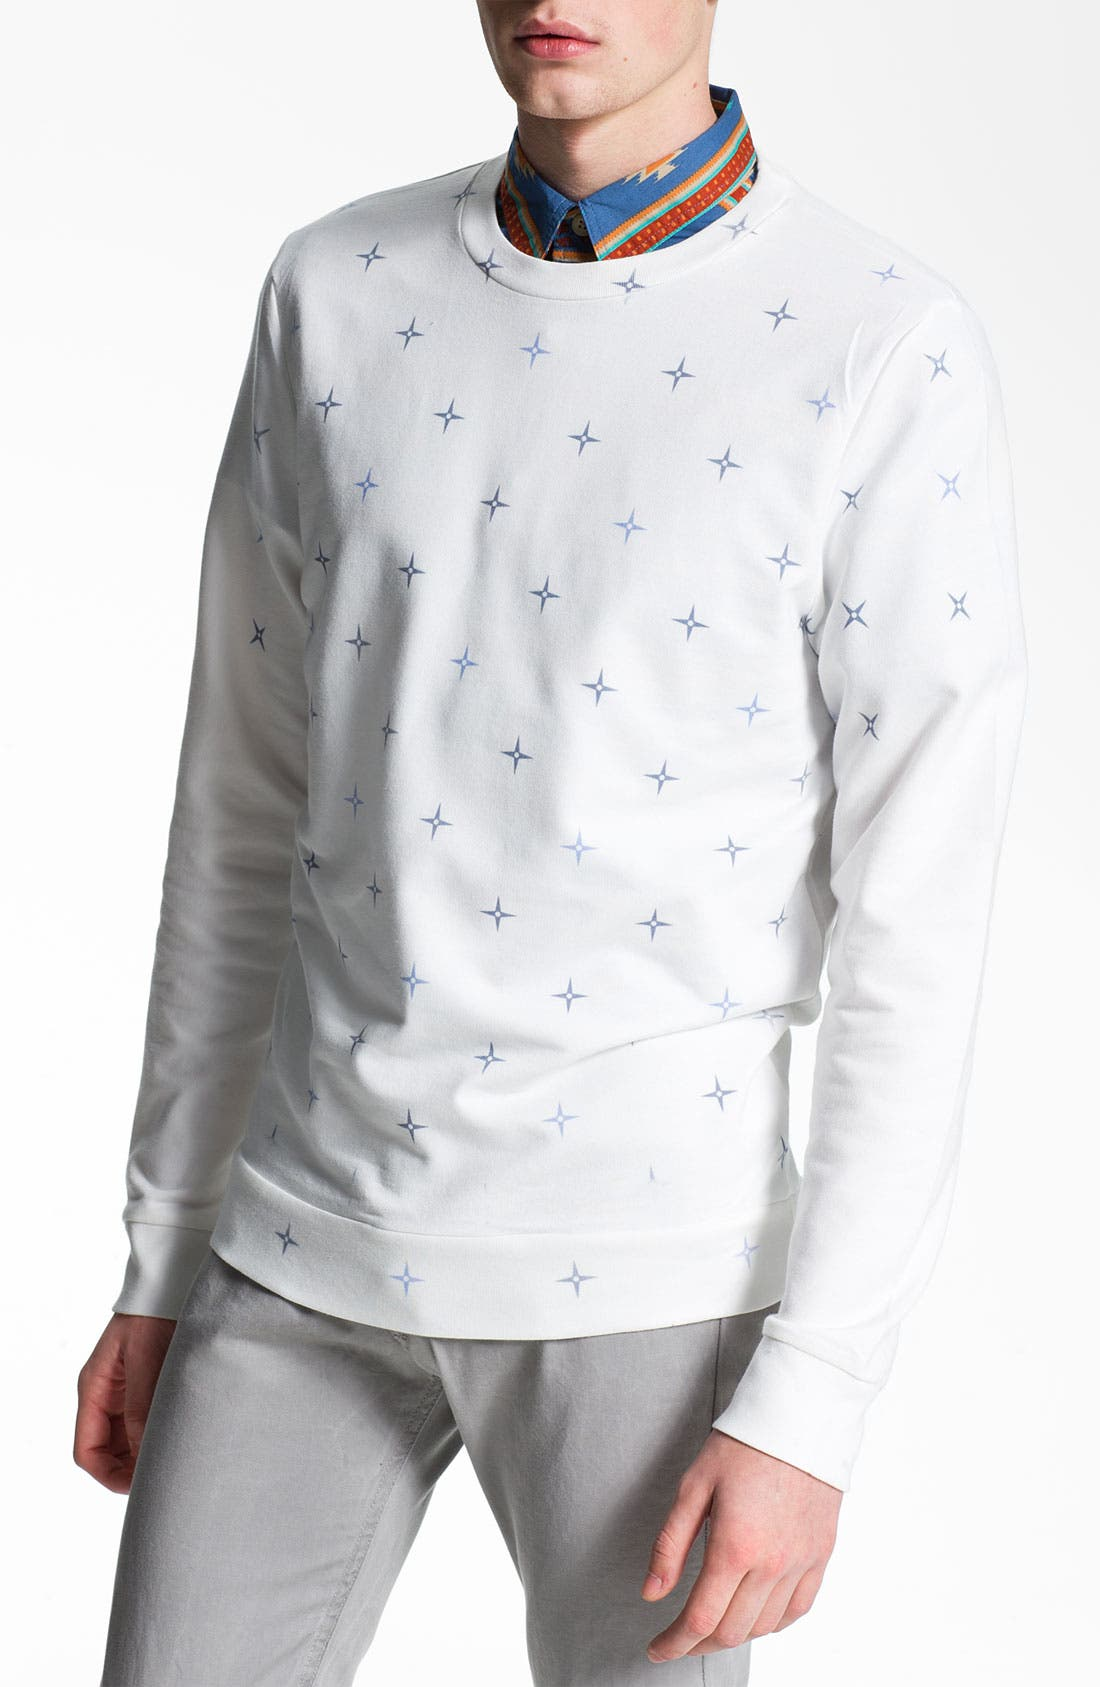 Alternate Image 1 Selected - Topman All Over Star Pattern Crewneck Sweatshirt (Nordstrom Exclusive)